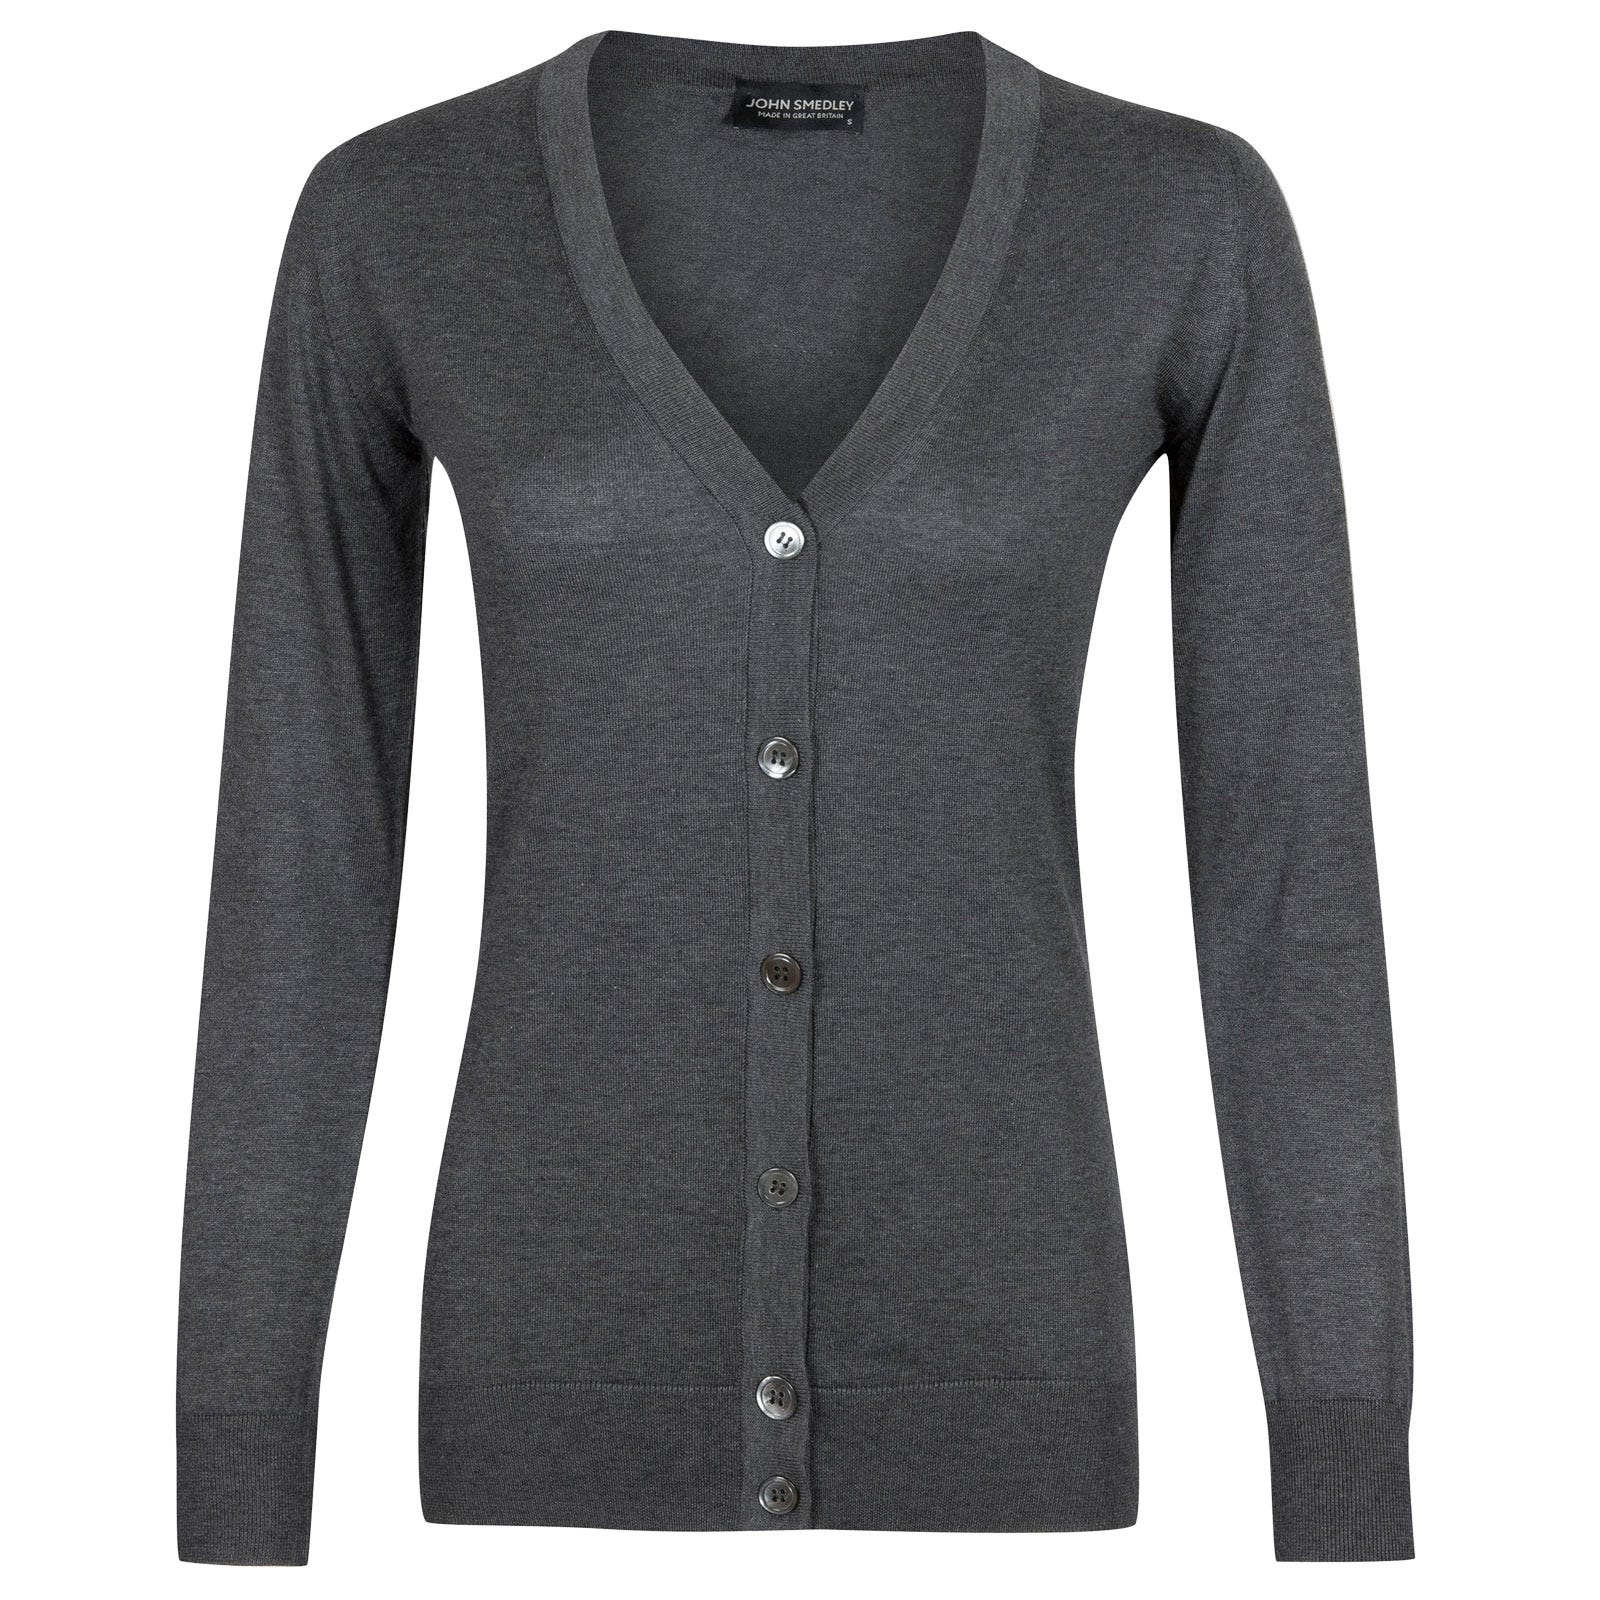 belsize-Charcoal-S